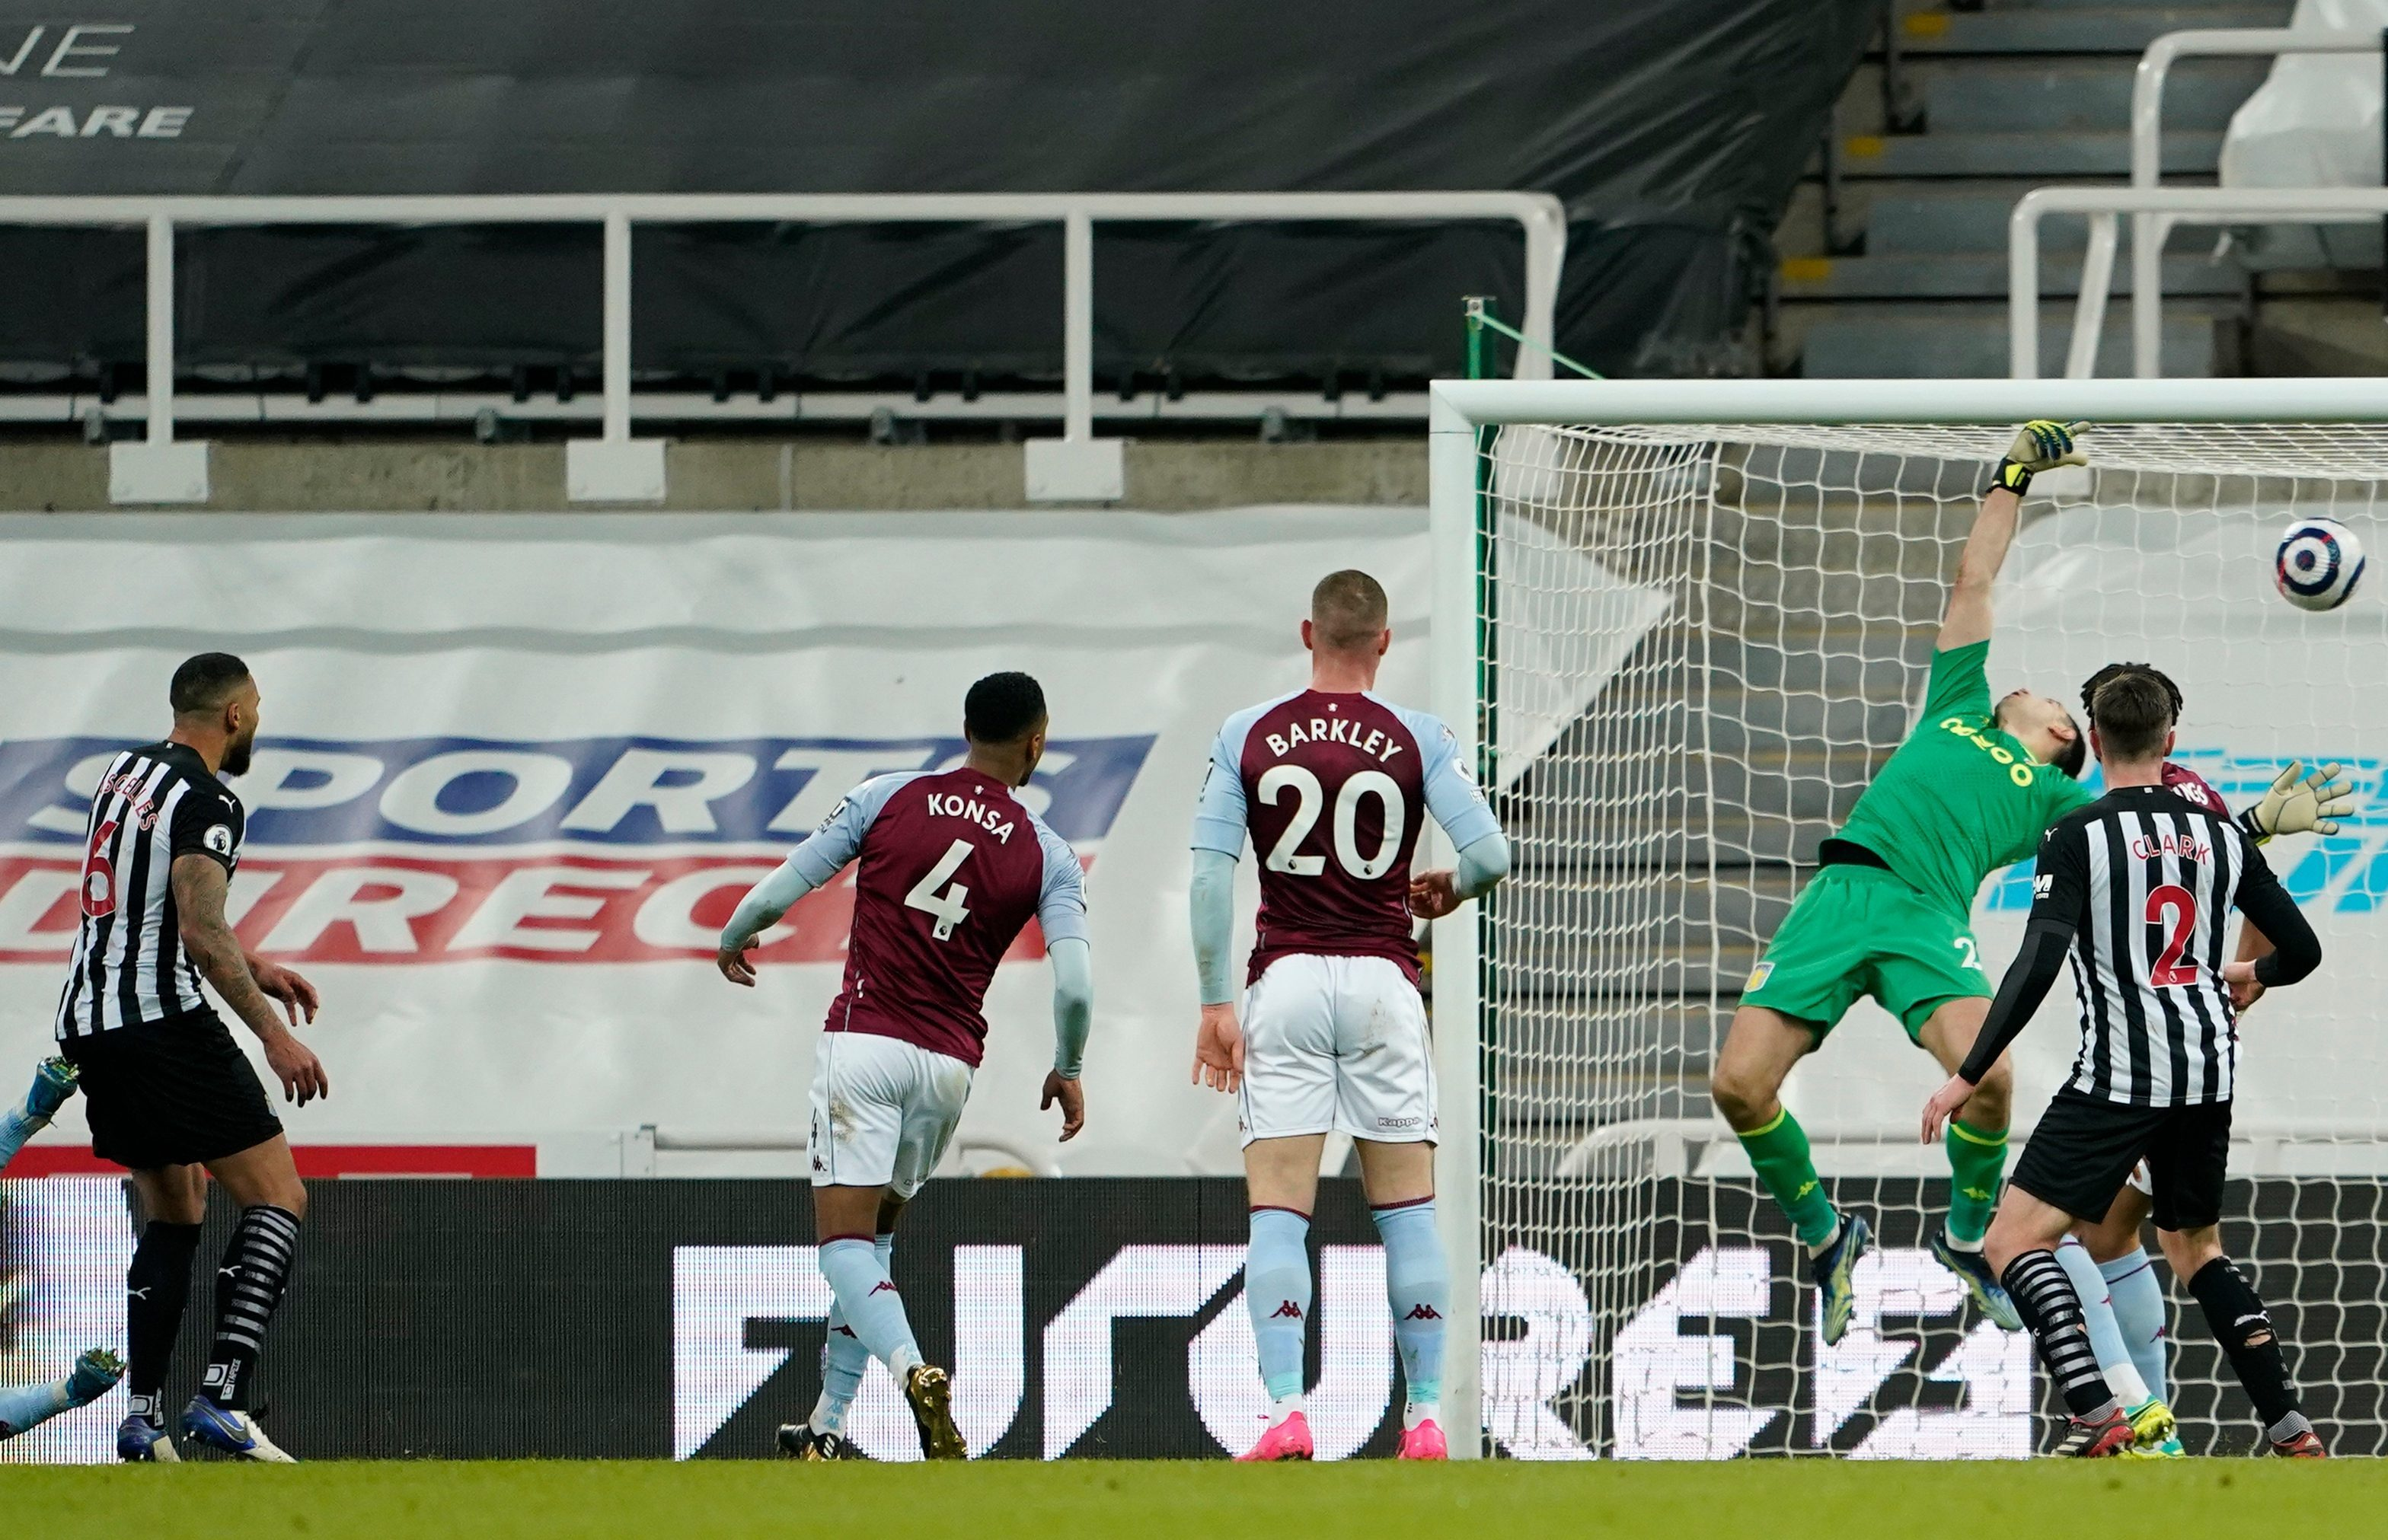 Jamal Lascelles scores injury-time goal to rescue point for relegation-threatened Newcastle against Aston Villa